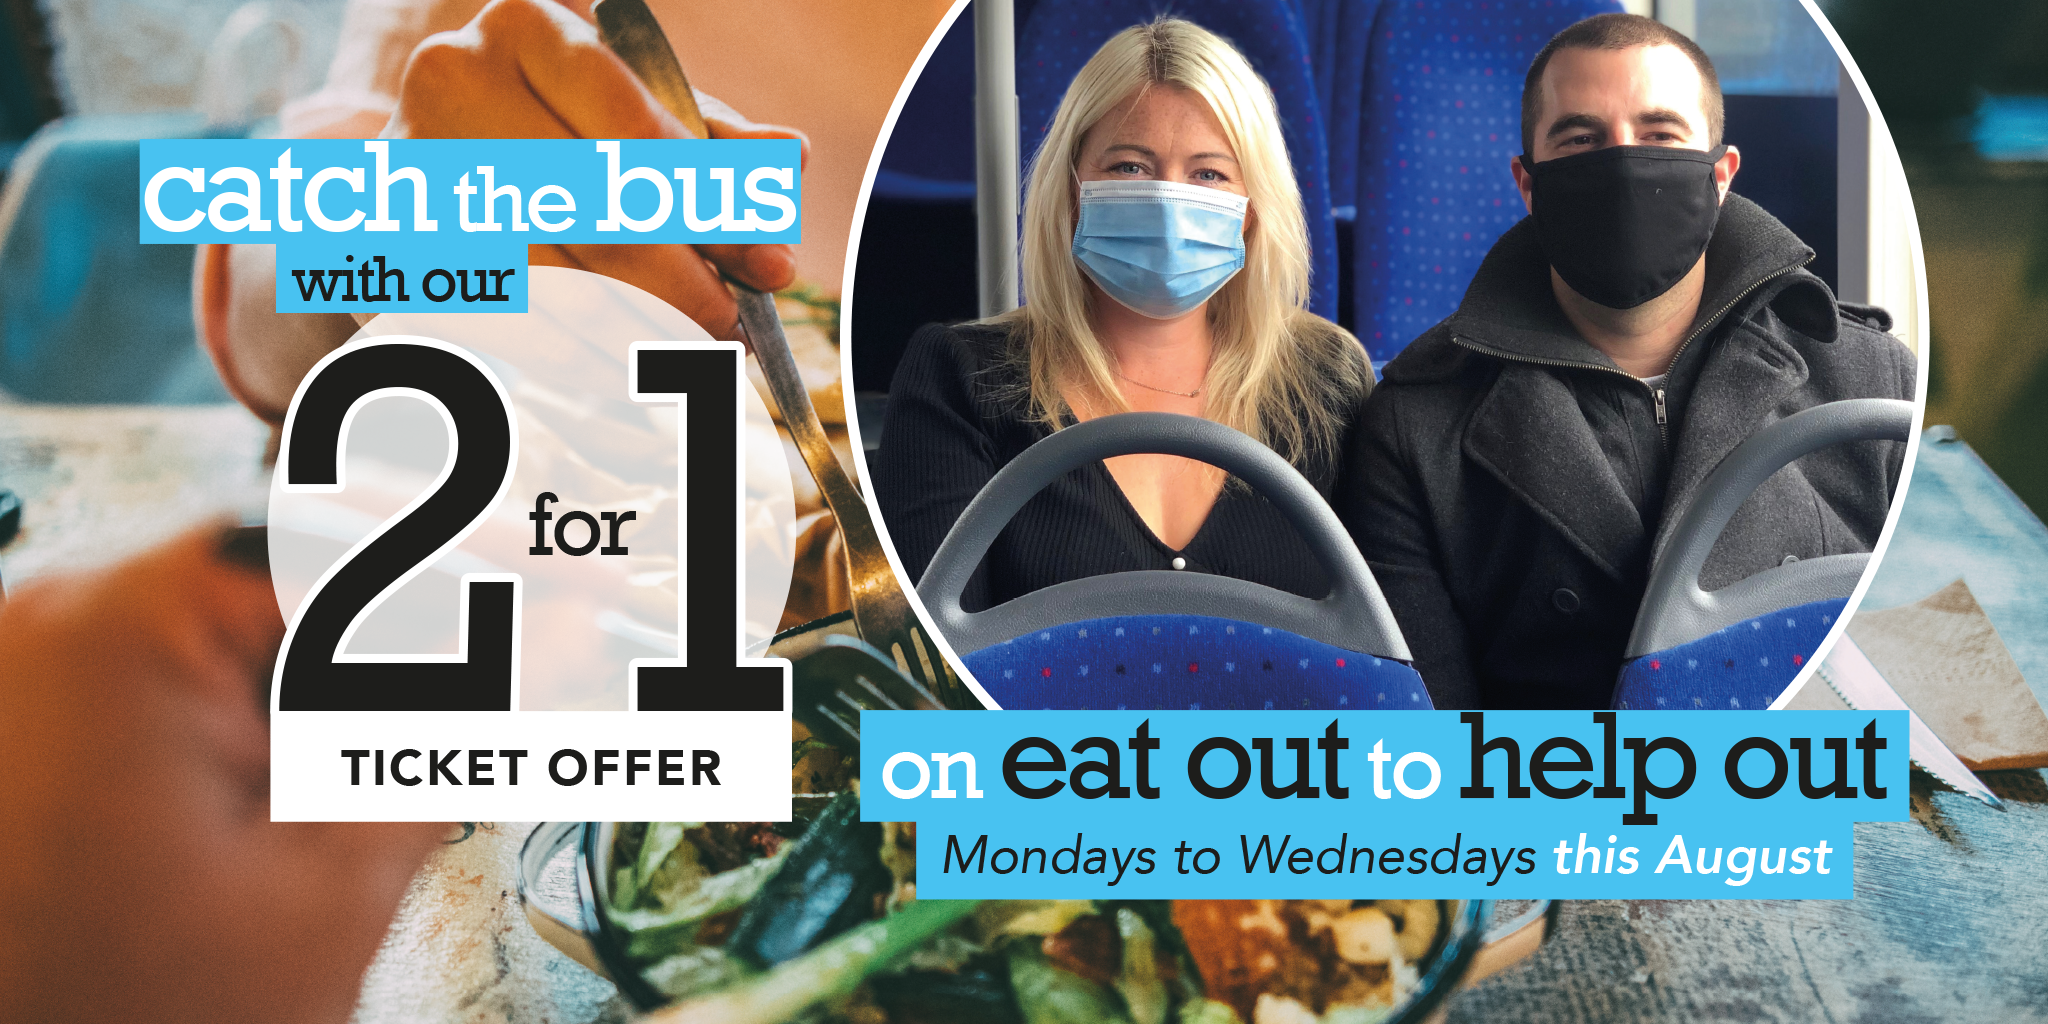 Photo of customers on the bus with text reading 'catch the bus with our 2 for 1 ticket offer on eat out to help out. Mondays to Wednesdays this August.'